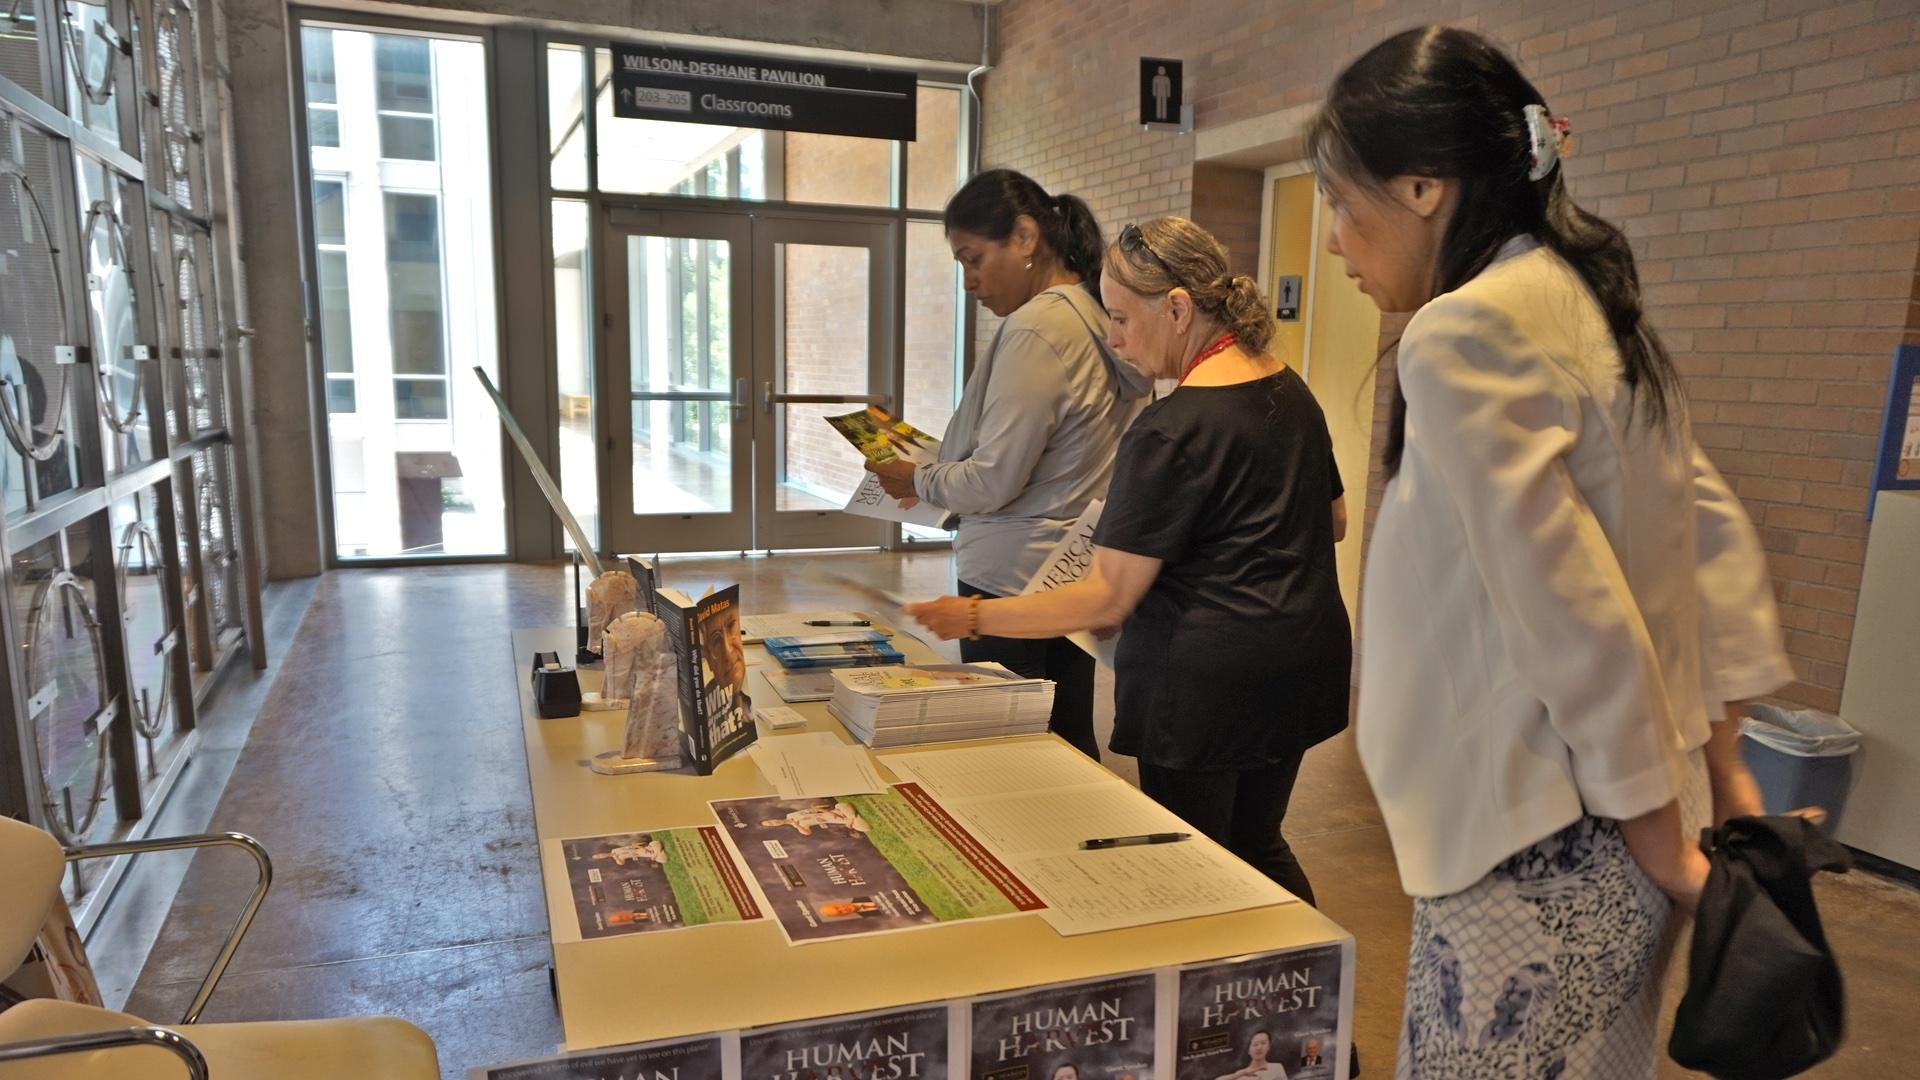 People look at materials raising awareness about forced organ harvesting in China following the screening. (Image: Vision Times)